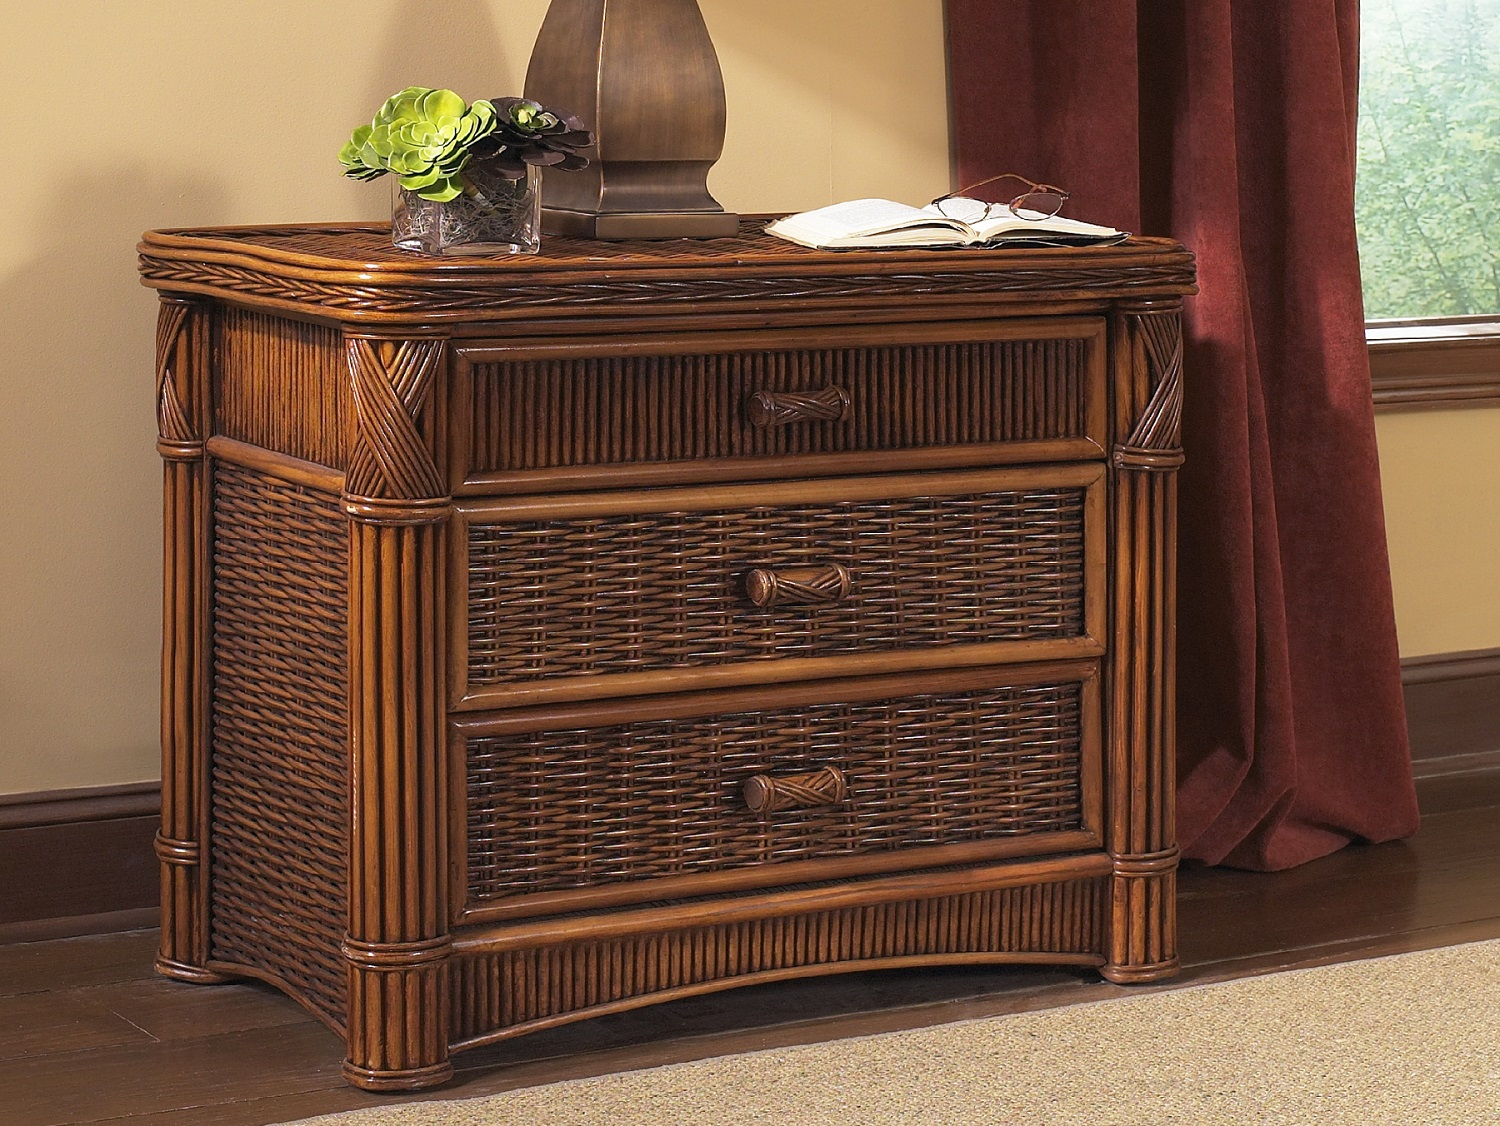 Wicker Chest Of Drawers Furniture Roselawnlutheran